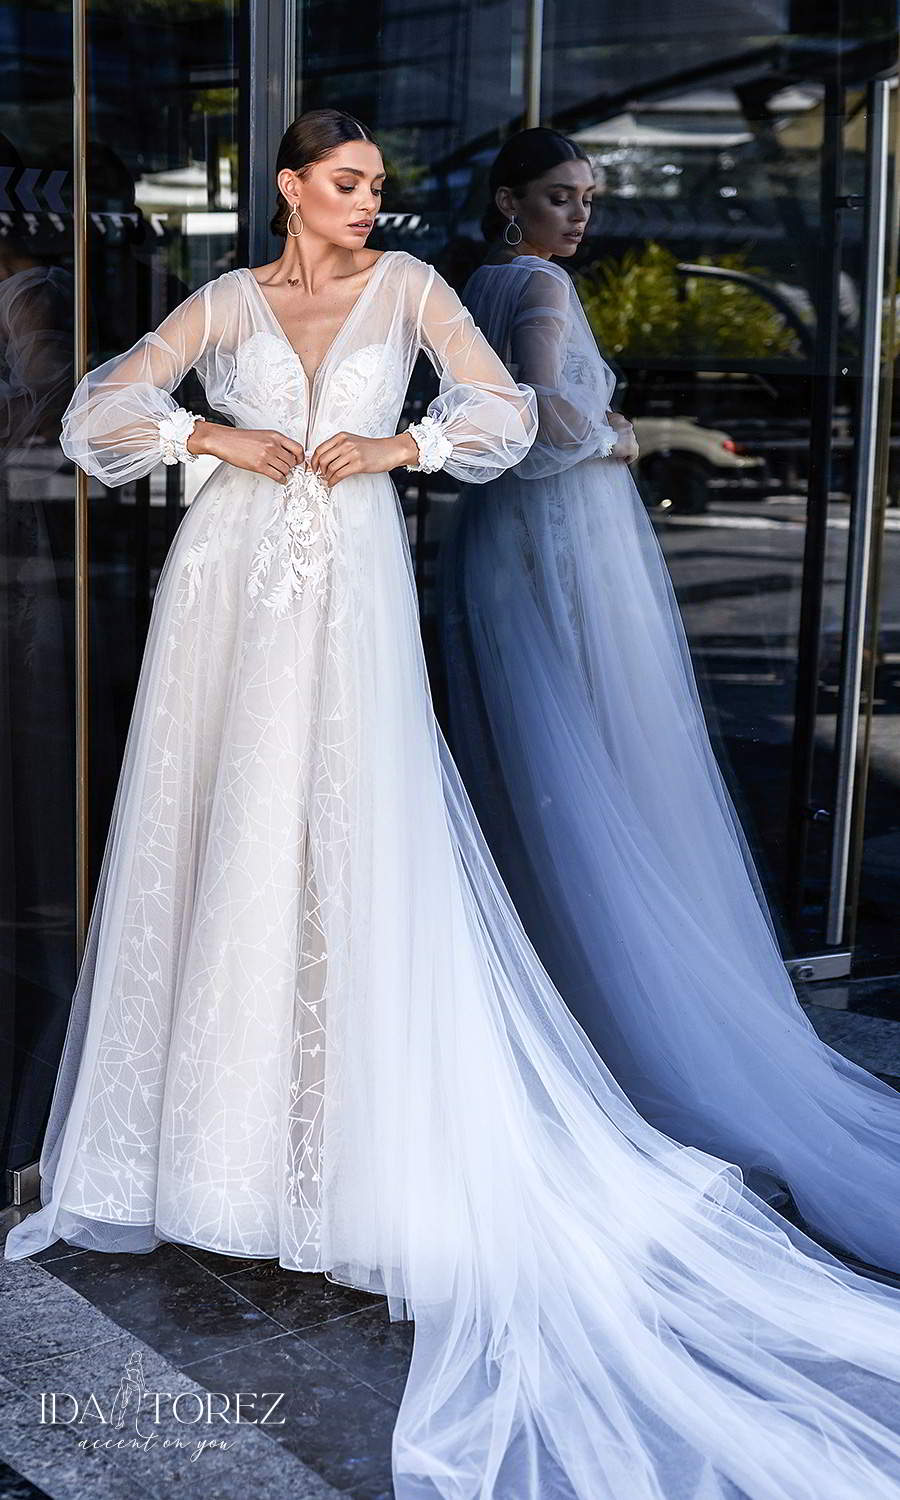 ida torez 2021 bridal strapless sweetheart neckline fully embellished a line ball gown wedding dress chapel train long puff sleeve coat (desire) mv